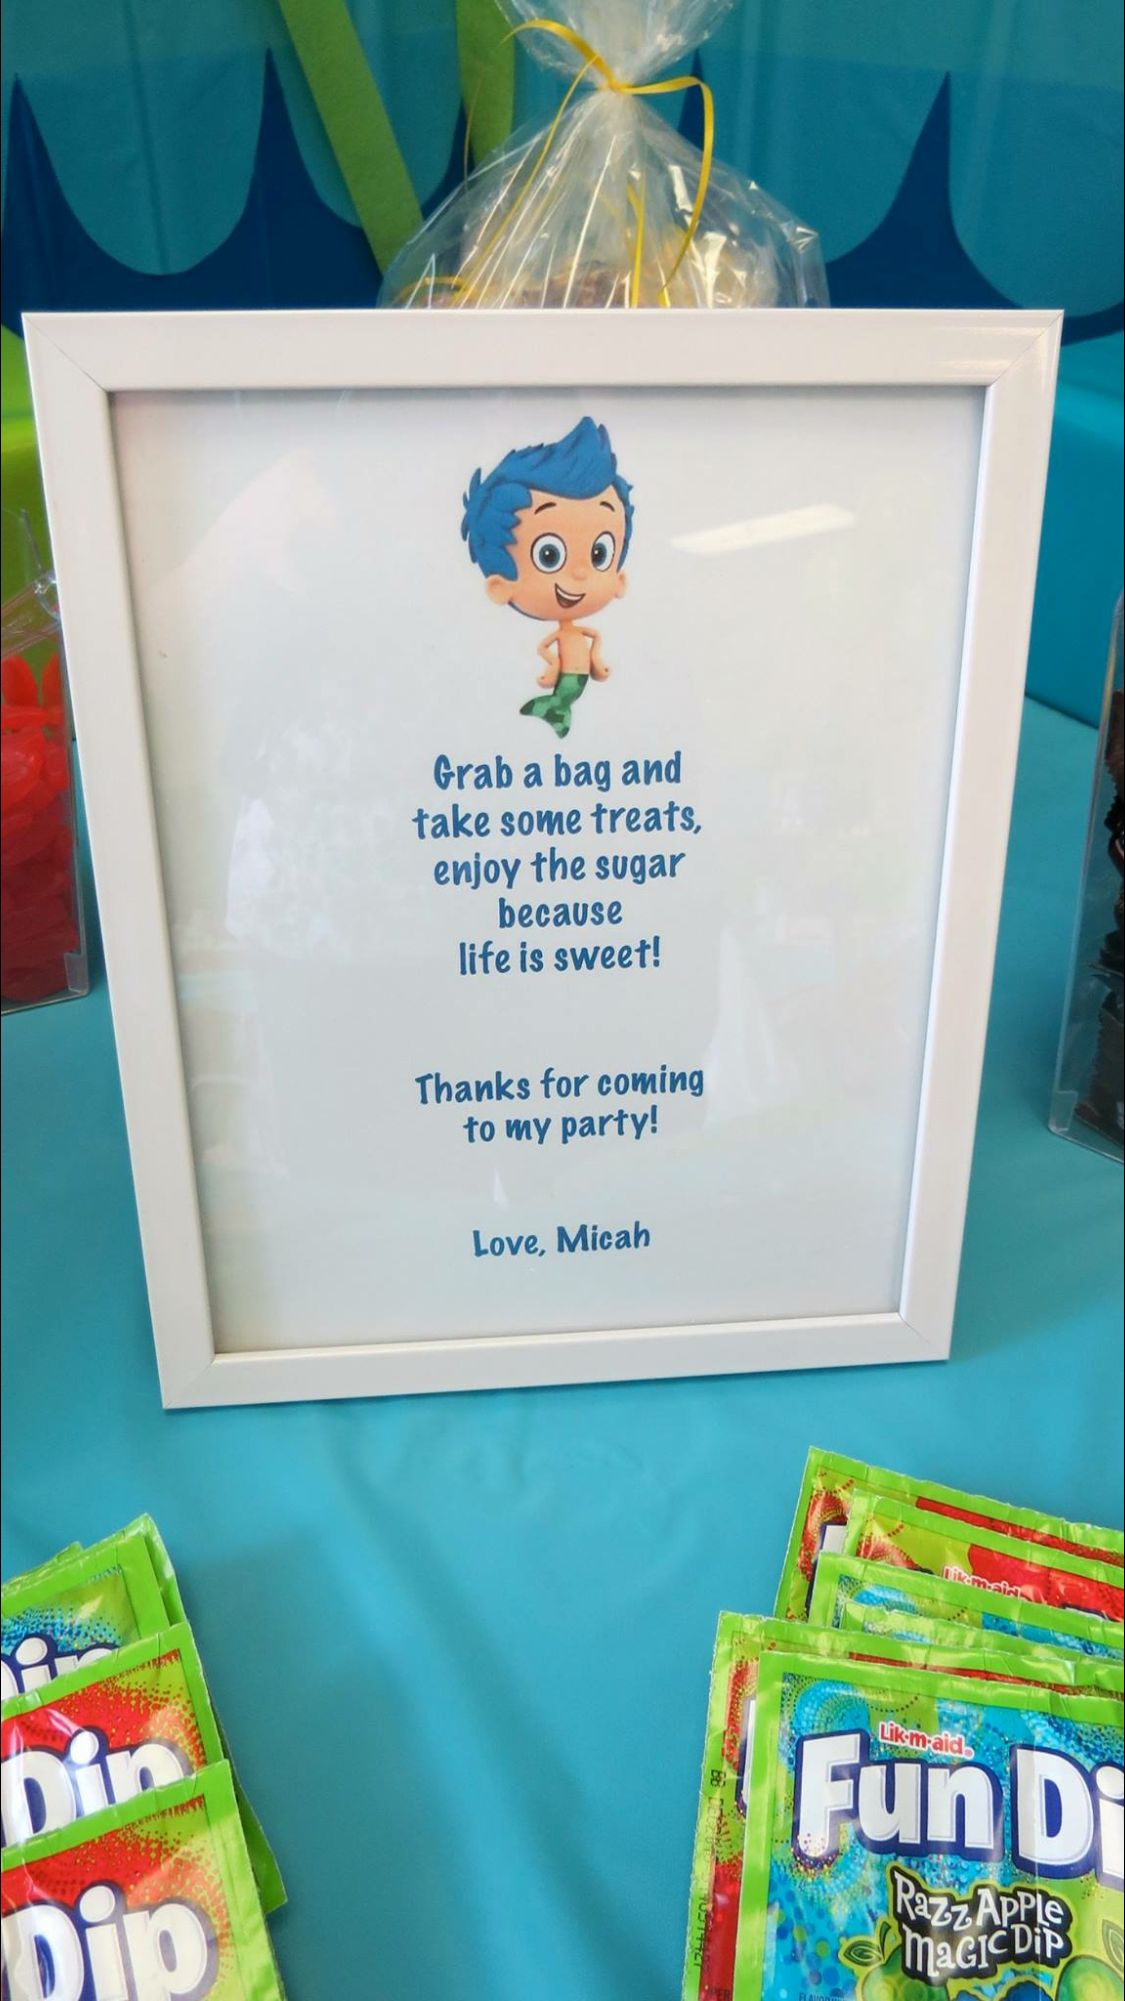 Thanks for coming | Aimee 3 | Pinterest | Bubble guppies, Guppy and ...